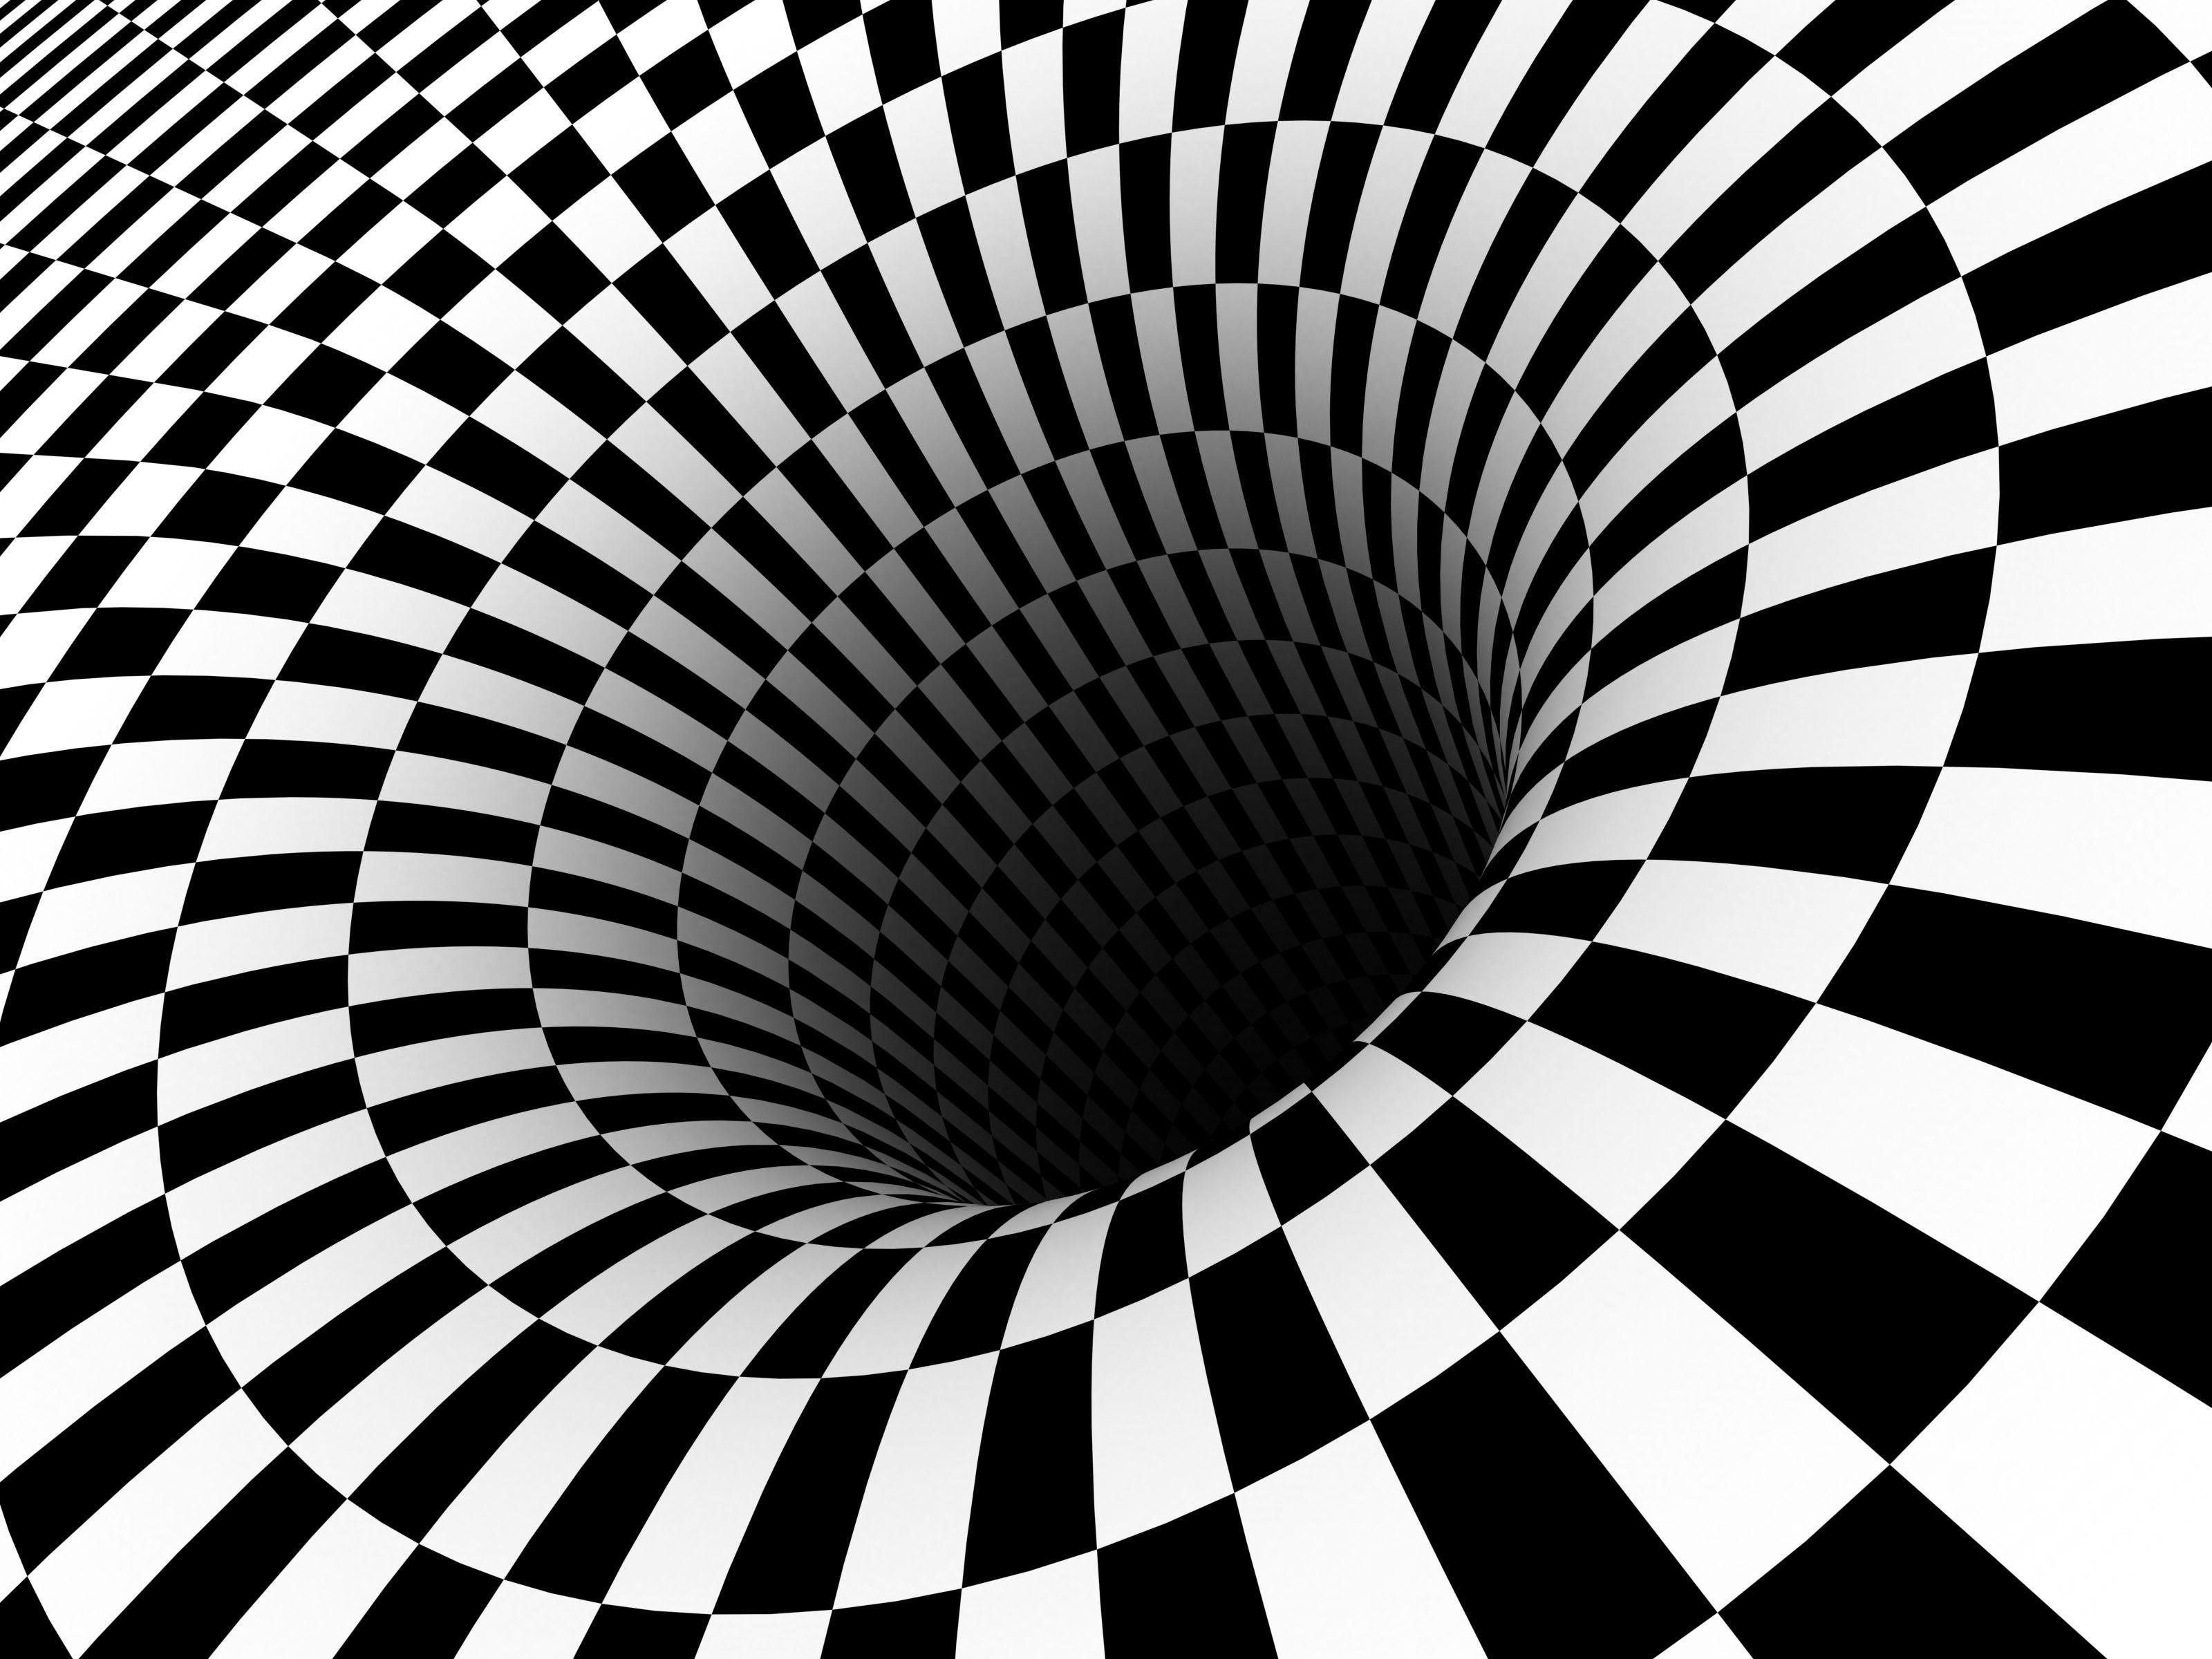 Black Hole Wallpaper Android Optical Illusion Wallpapers Wallpaper Cave